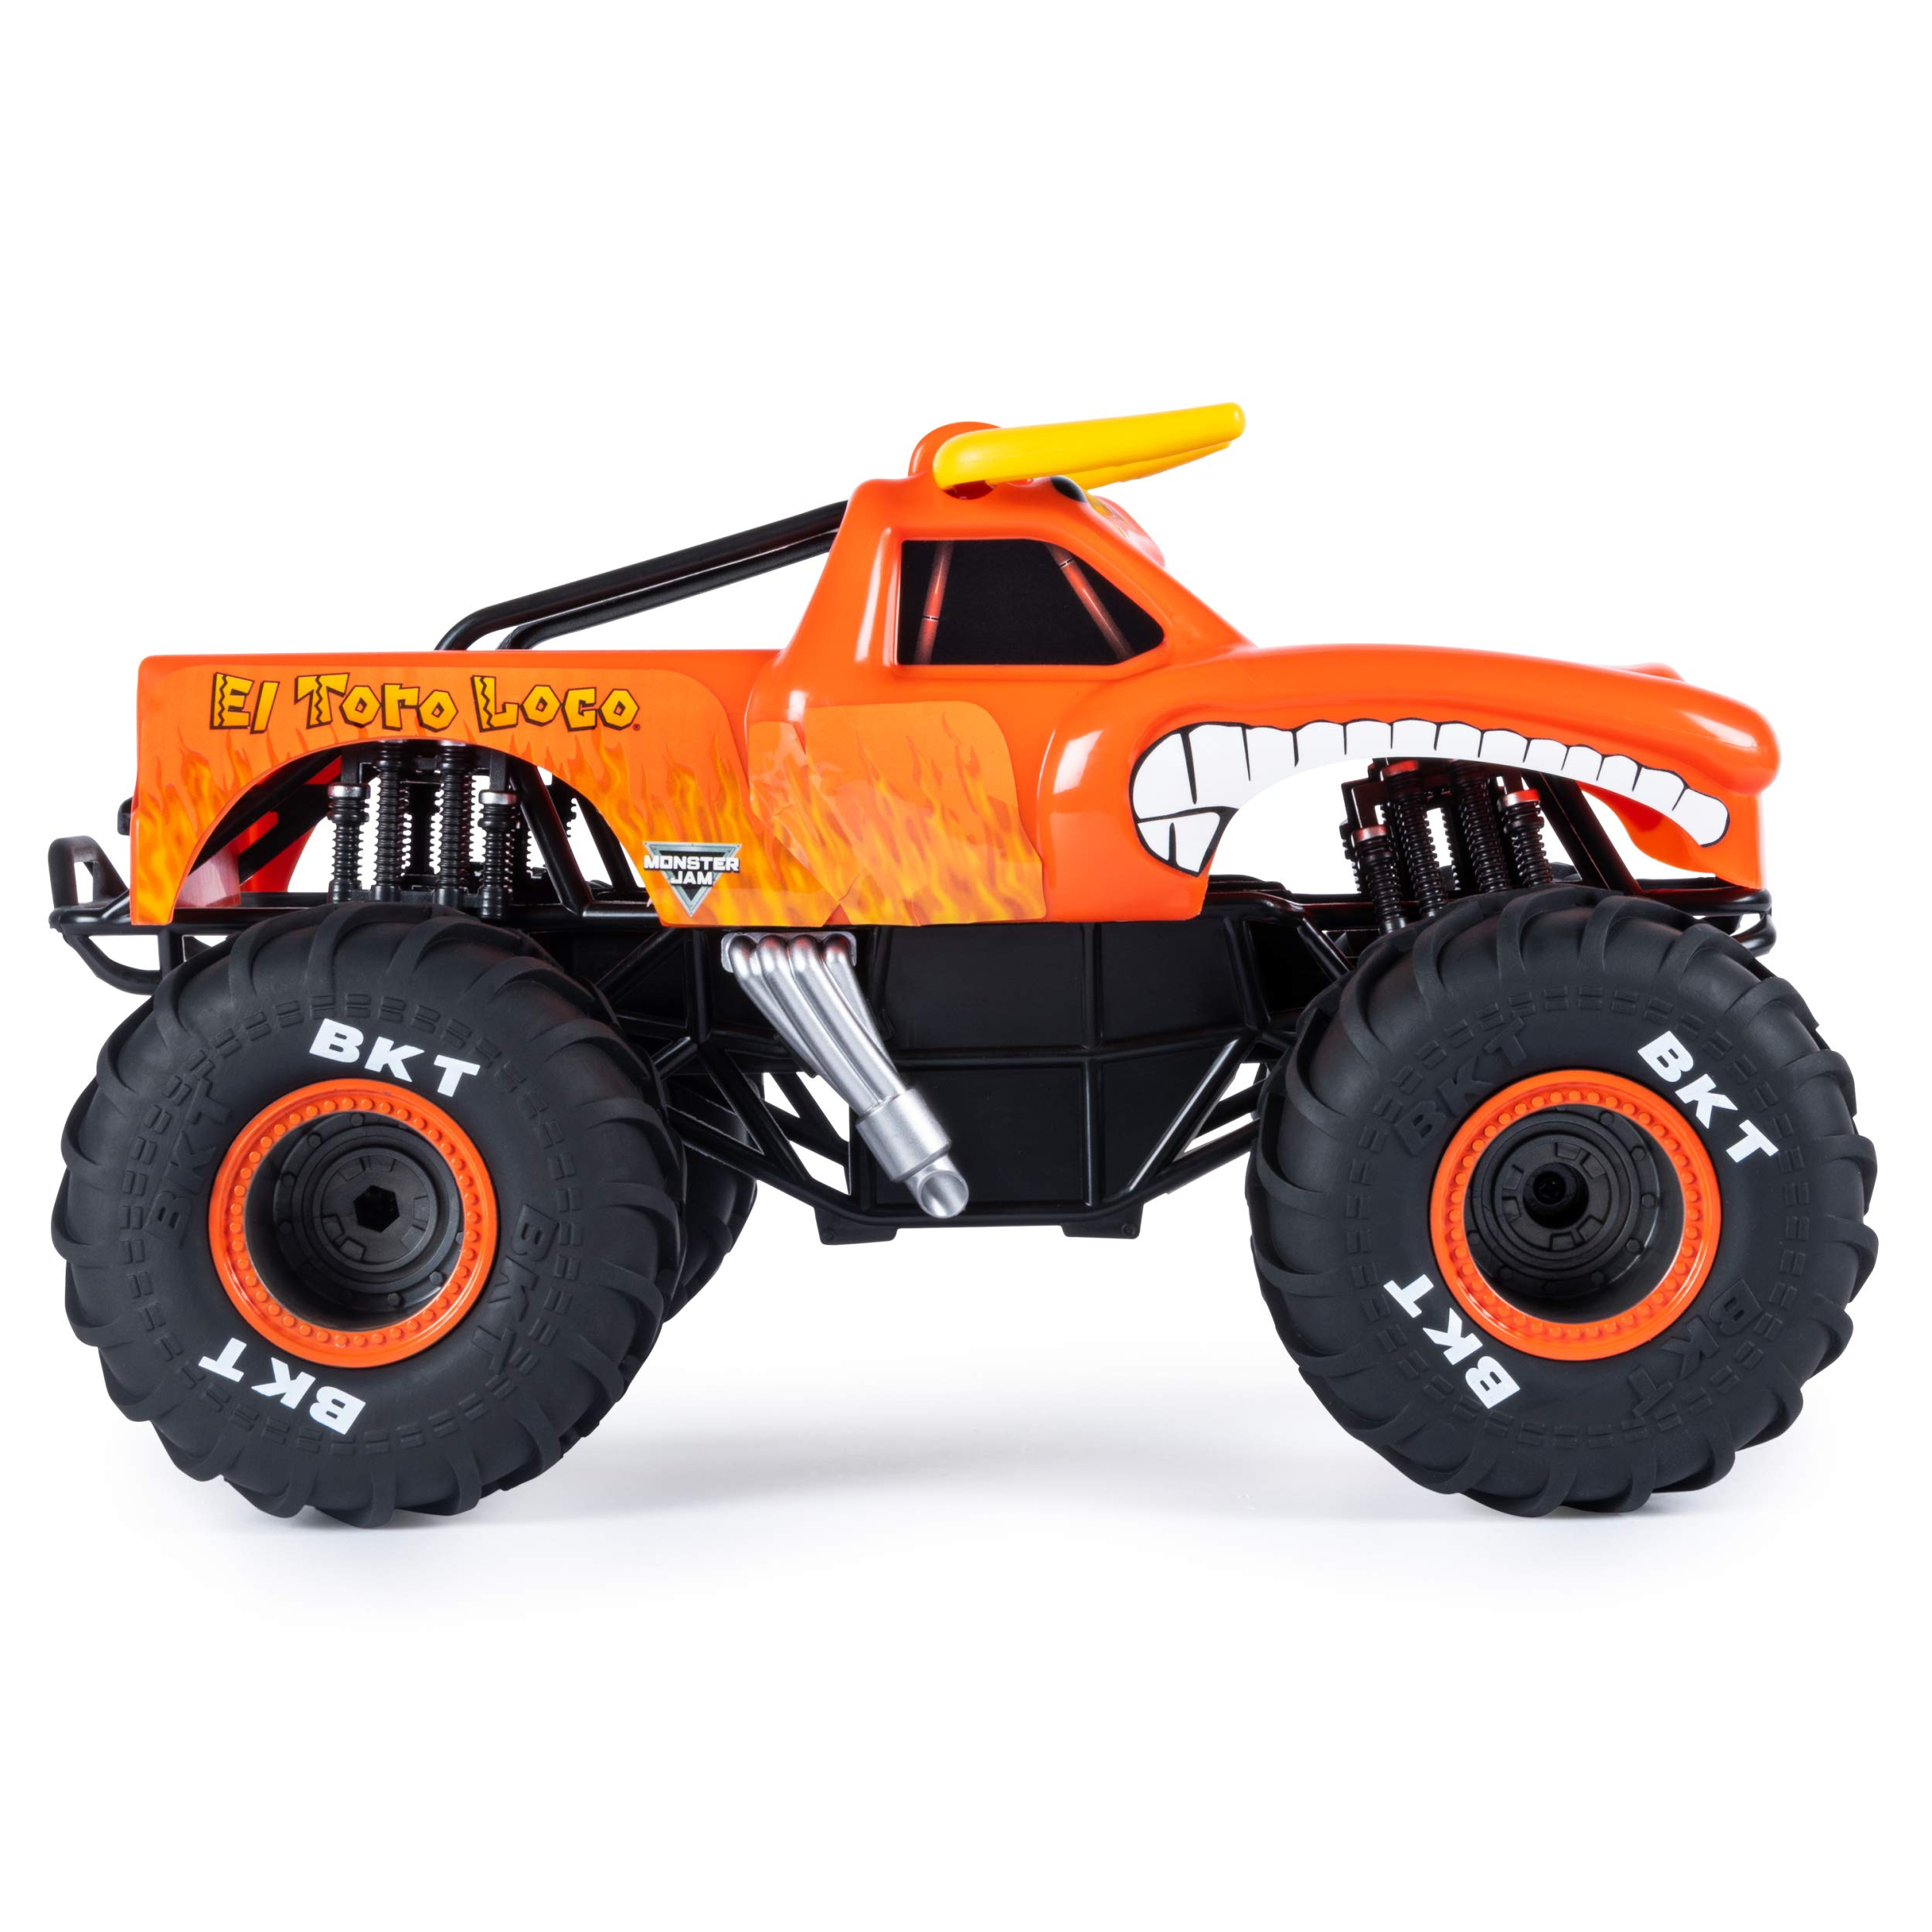 Monster Jam Official El Toro Loco Remote Control Monster Truck, 1:15 Scale, 2.4 GHz by Monster Jam (Image #7)